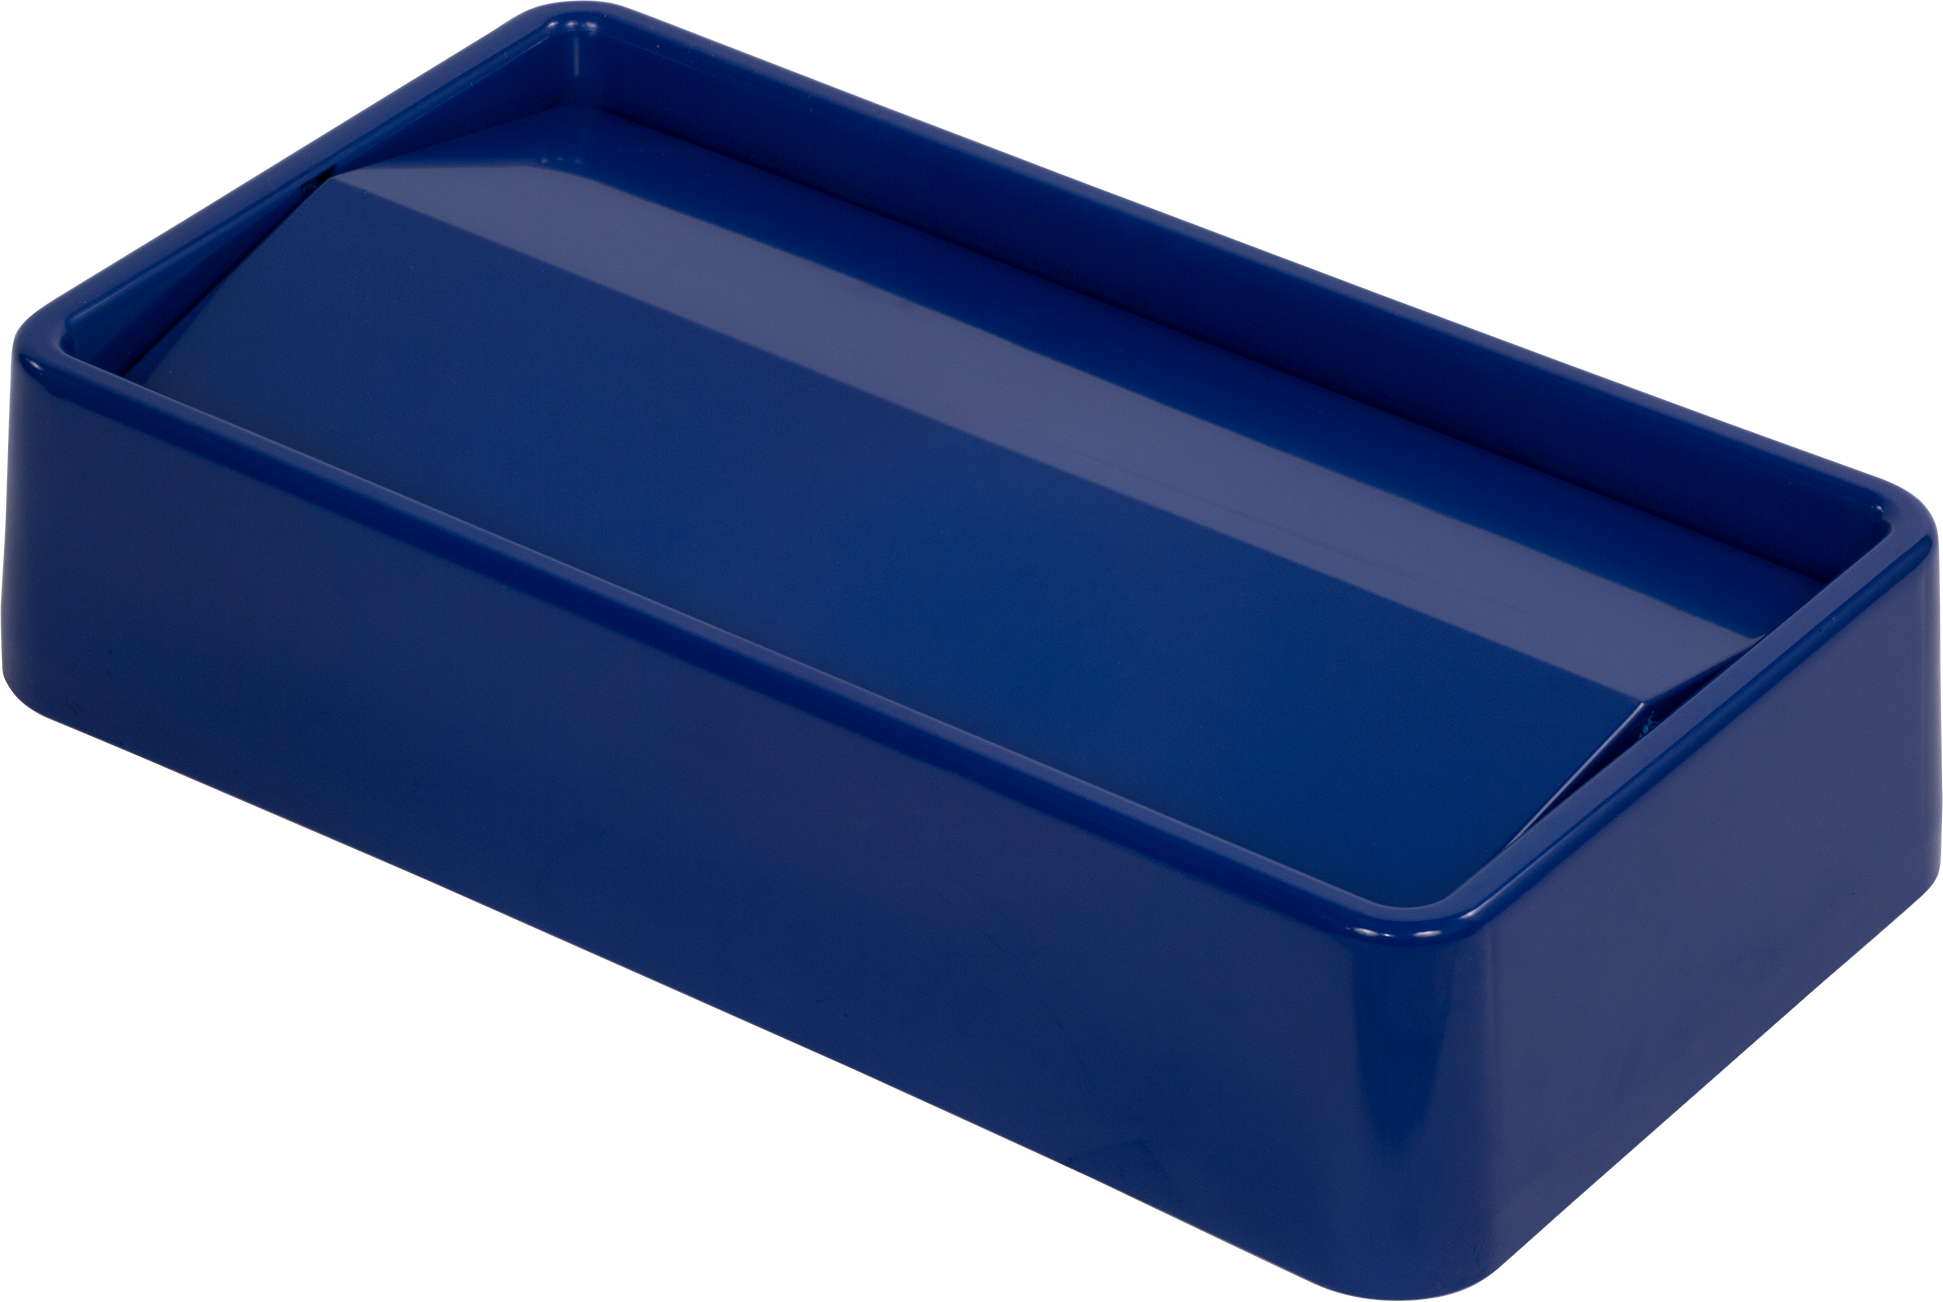 TrimLine Rectangle Swing Top Waste Container Trash Can Lid 15 and 23 Gallon - Blue